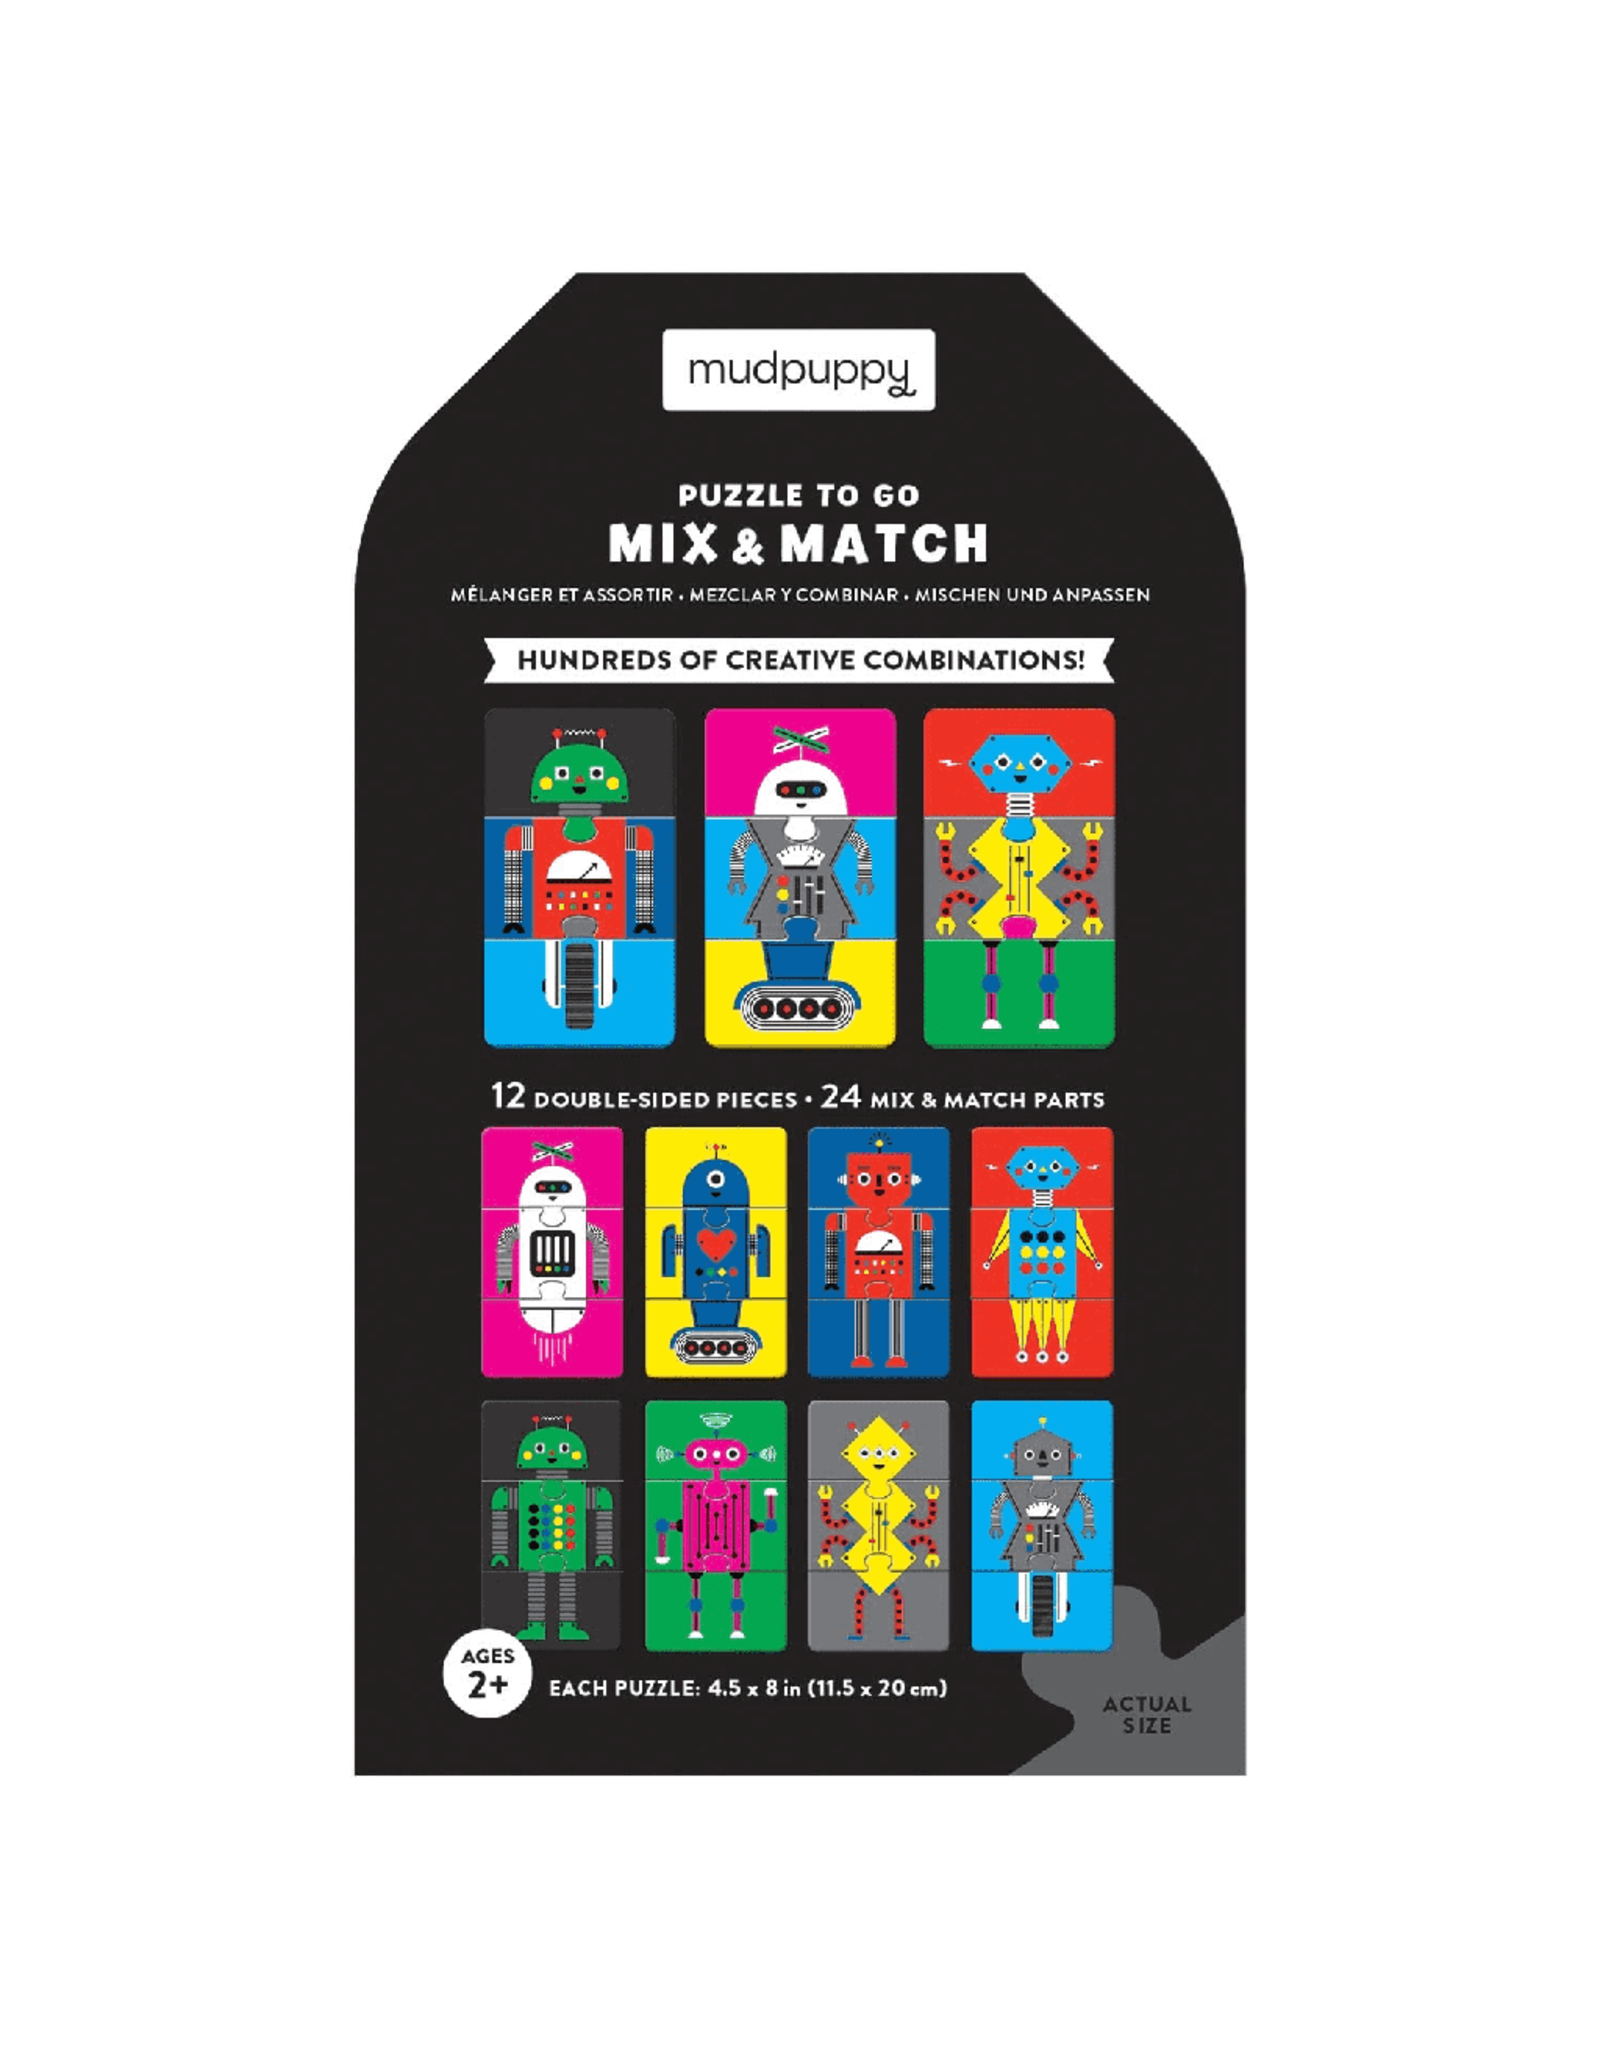 Mudpuppy Robotics Lab Mix & Match Puzzle To Go